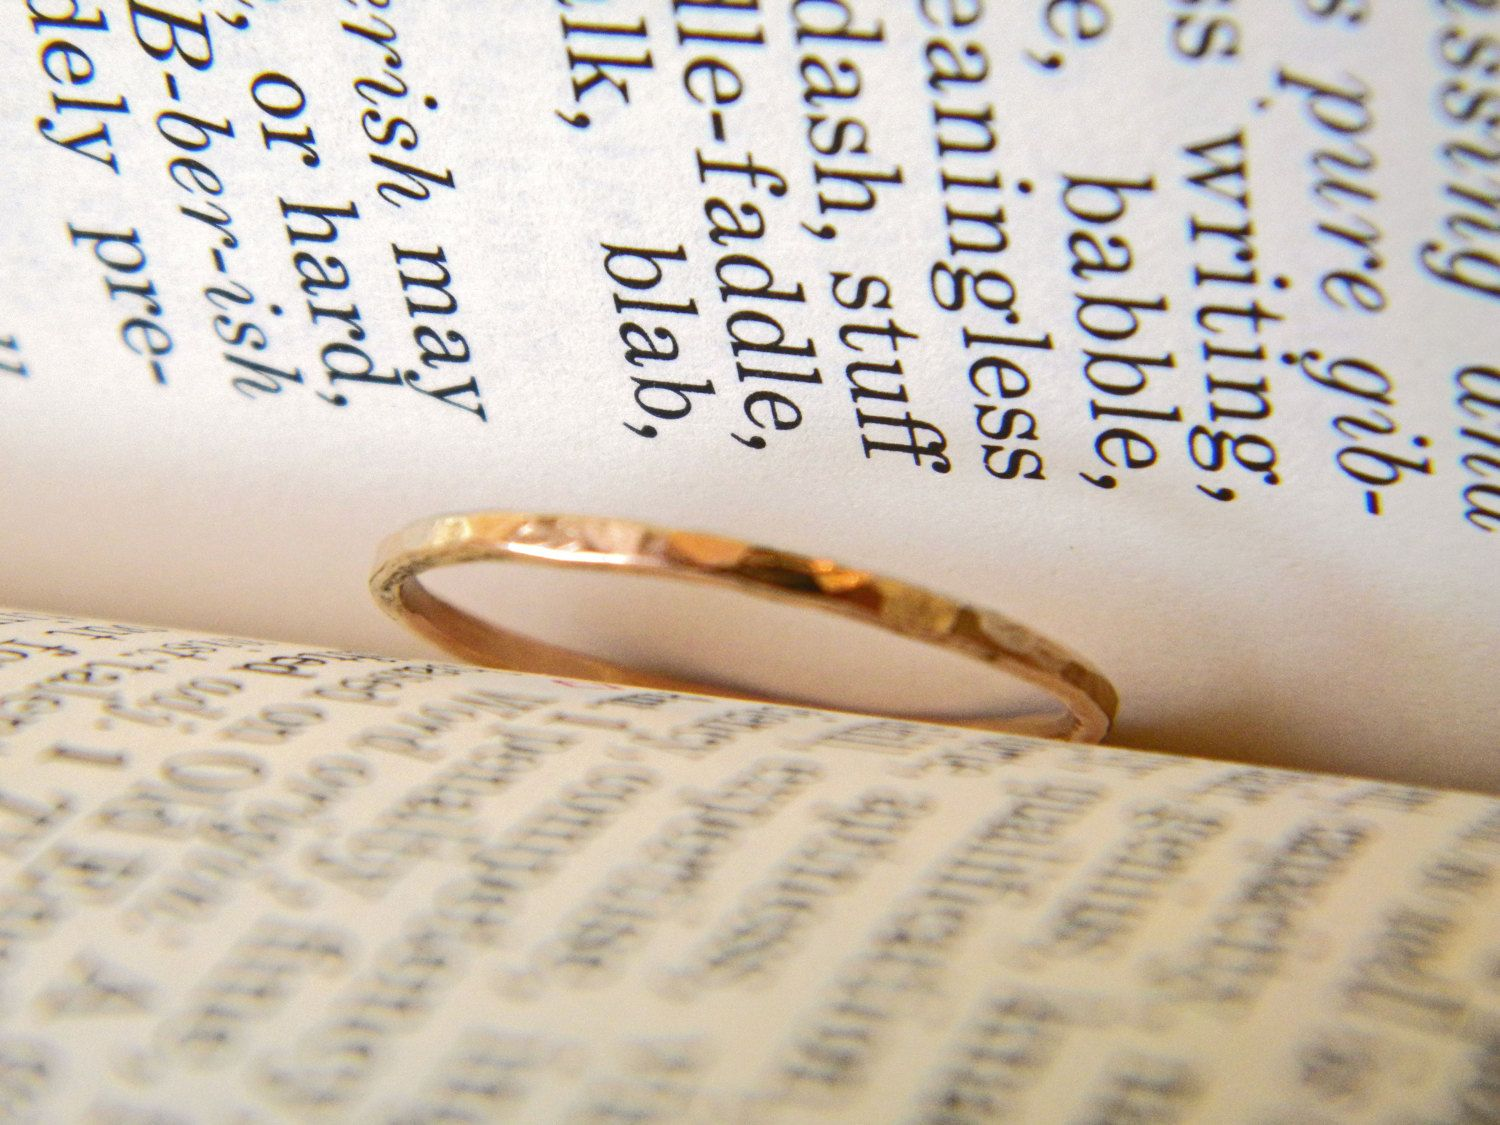 Gold Thumb Ring 12 Karat Gold Filled Hammered Stacking Ring Stackable Thumb Ring Women S Jewelry Gold Thumb Rings Thumb Rings Jewelry